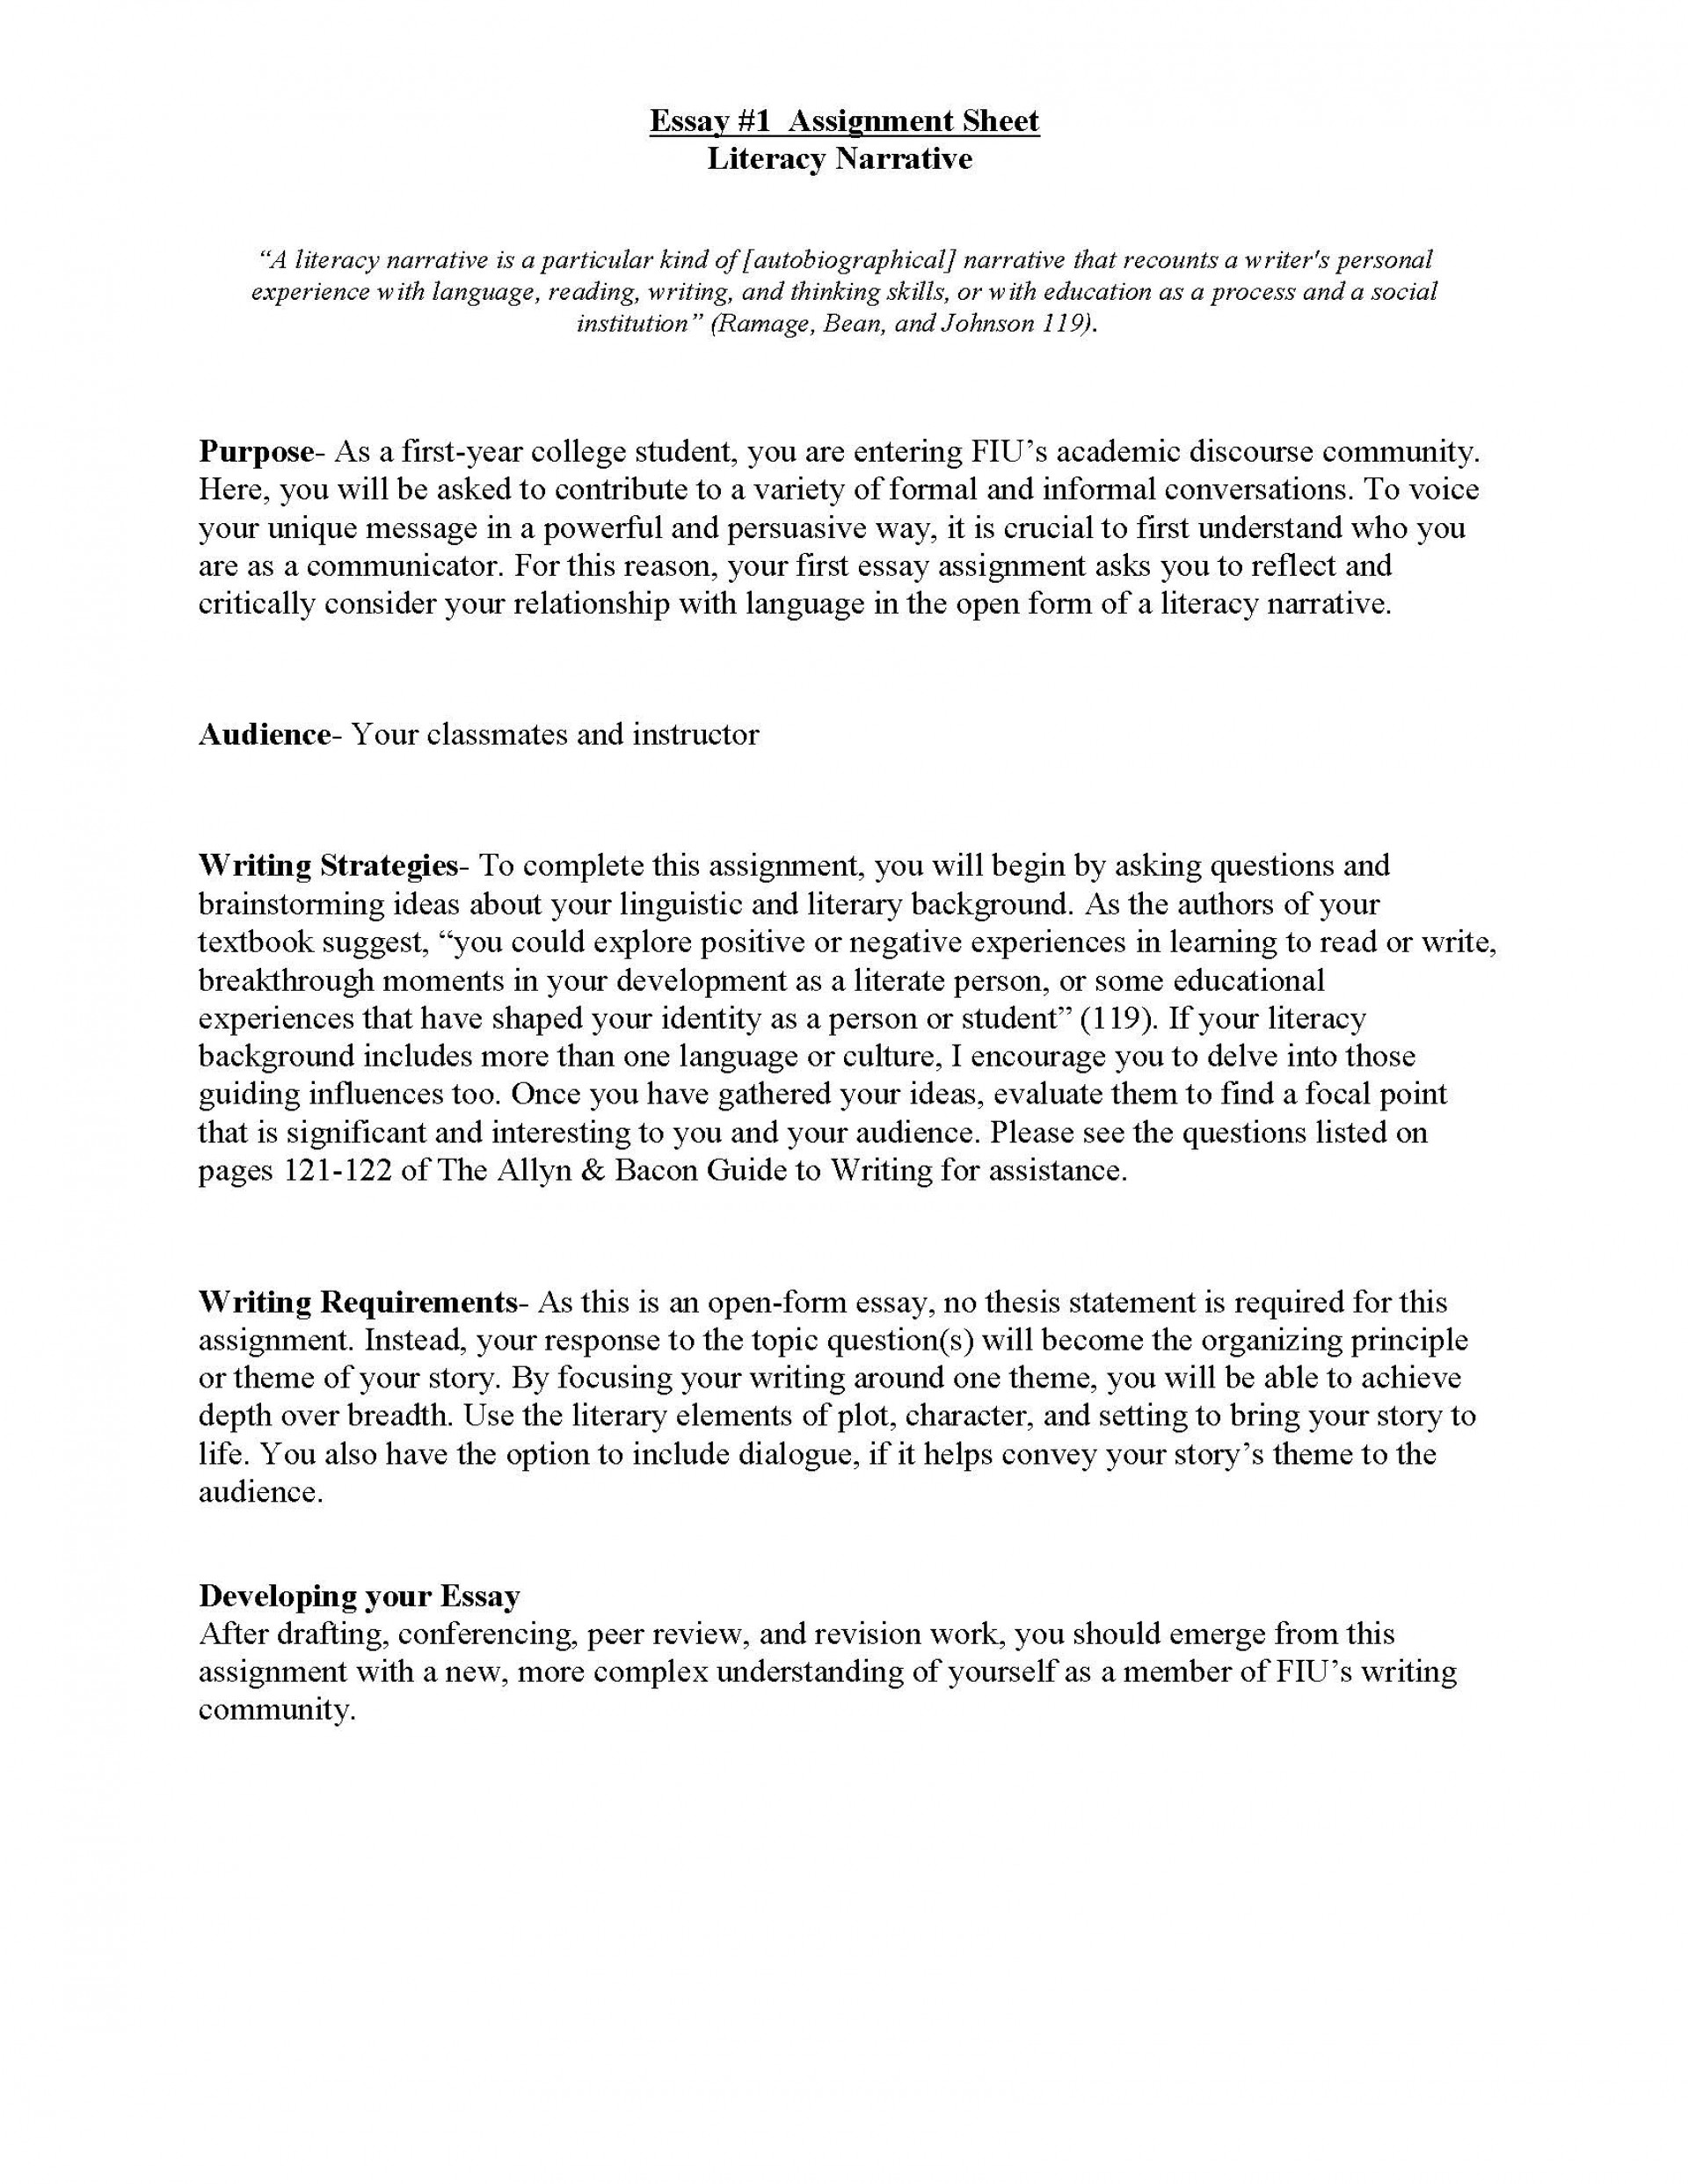 010 How To Write Personal Narrative Essay For College Literacy Unit Assignment Spring 2012 Page 1 Fascinating A 1920